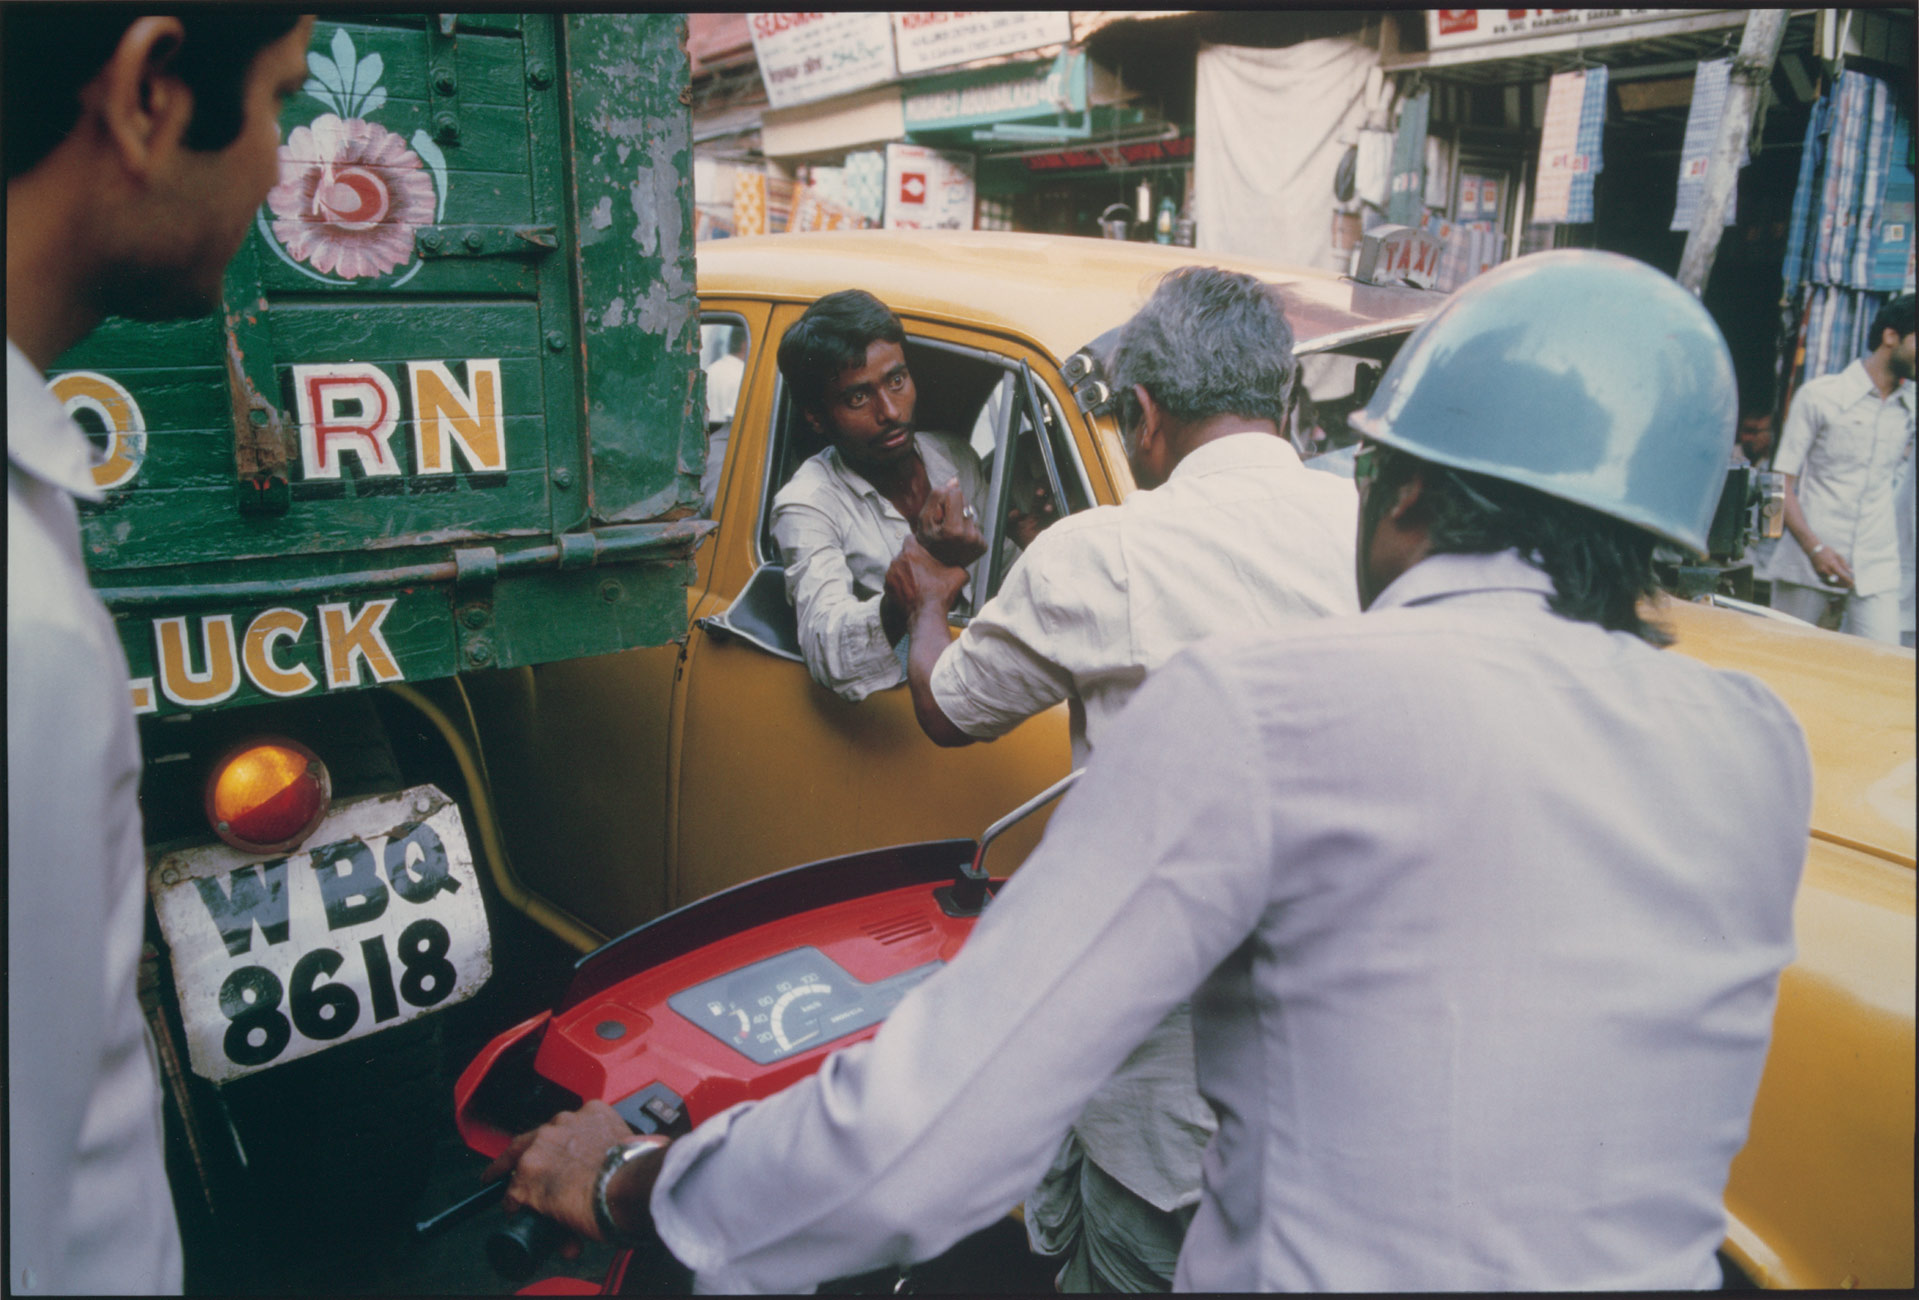 Taxi Driver and Pedestrian Argue, Chitpur Road, Calcutta